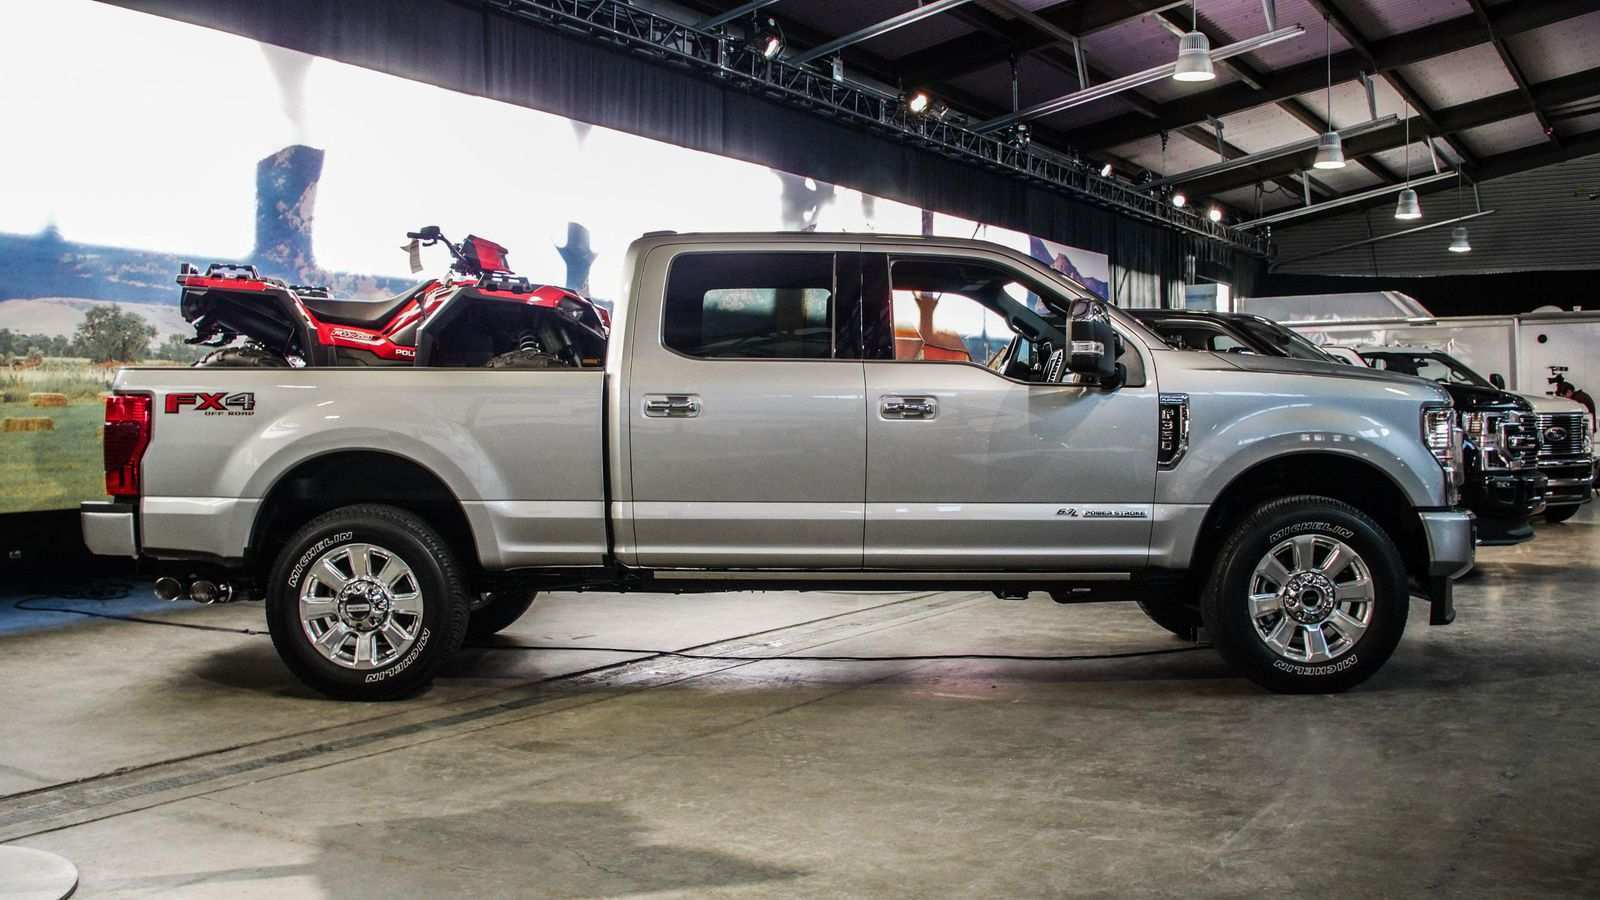 48 A 2020 Ford F350 Diesel Pricing